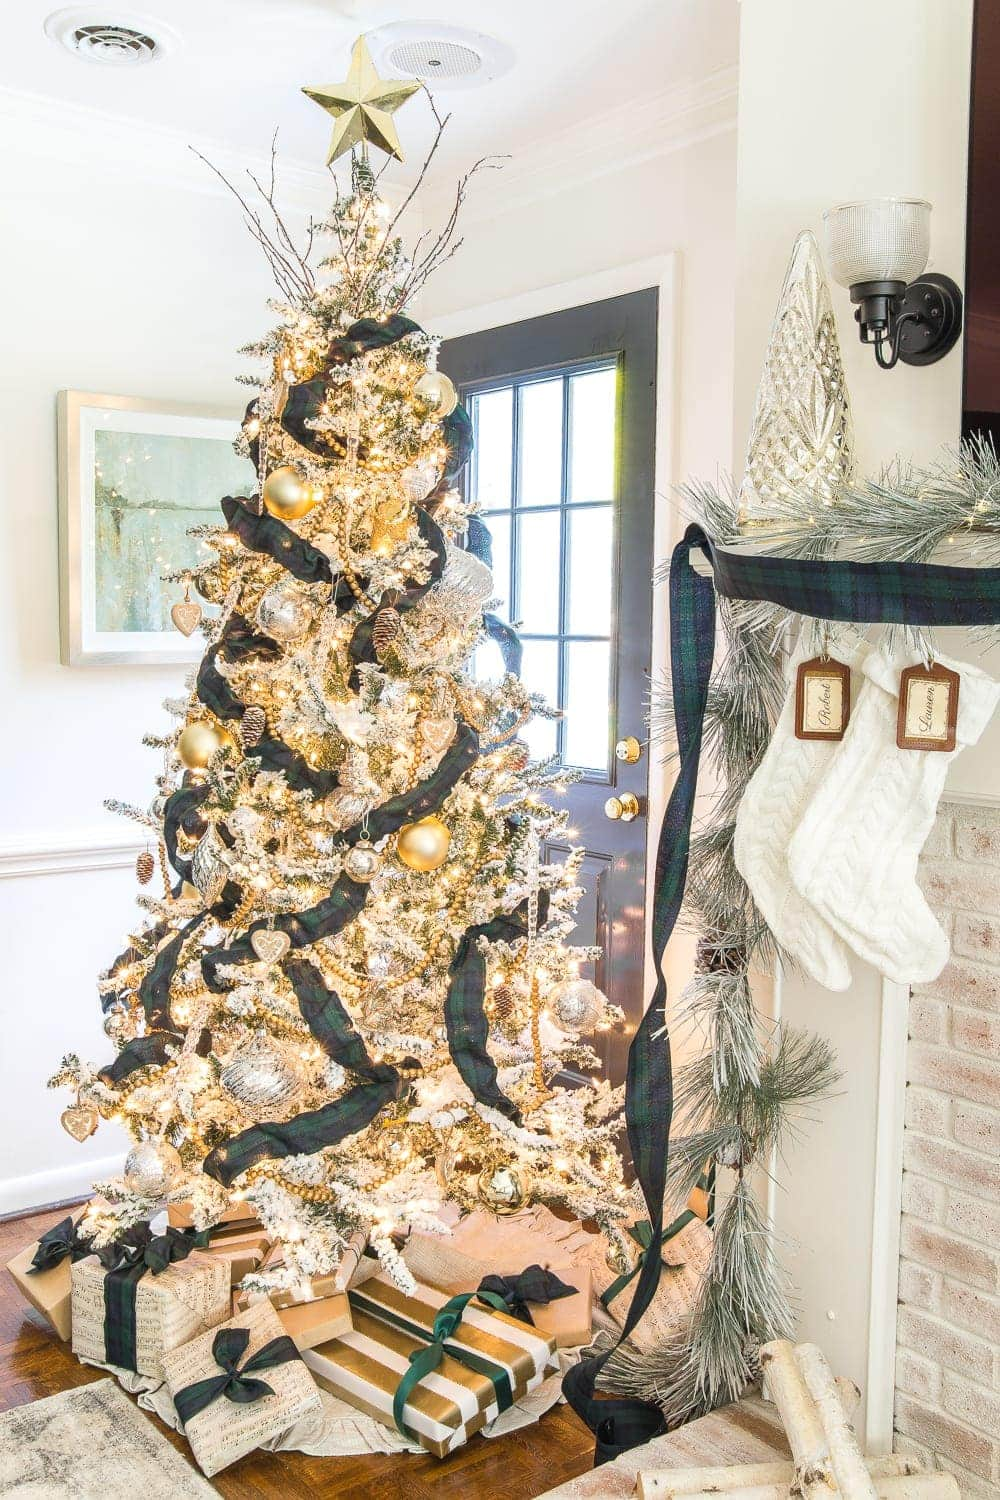 Thrifty Christmas decorating idea: Add ribbon to change up the look of your mantel and tree each year